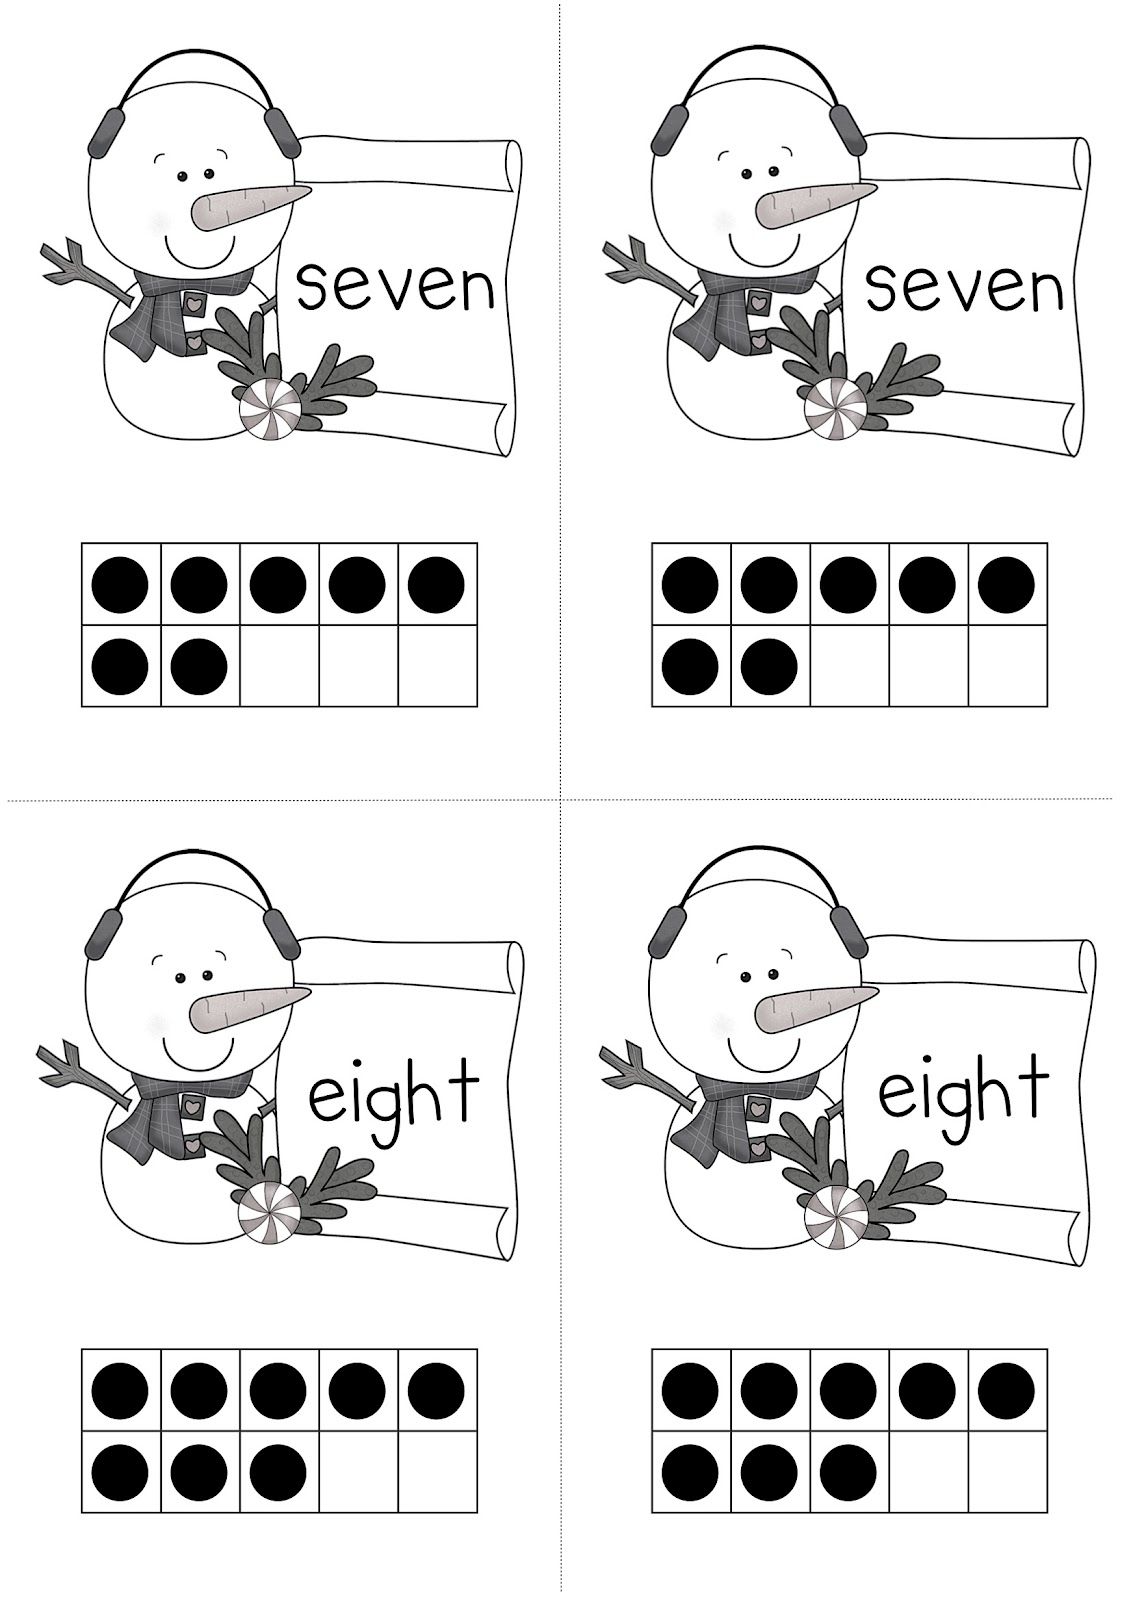 Counting atoms worksheet doc